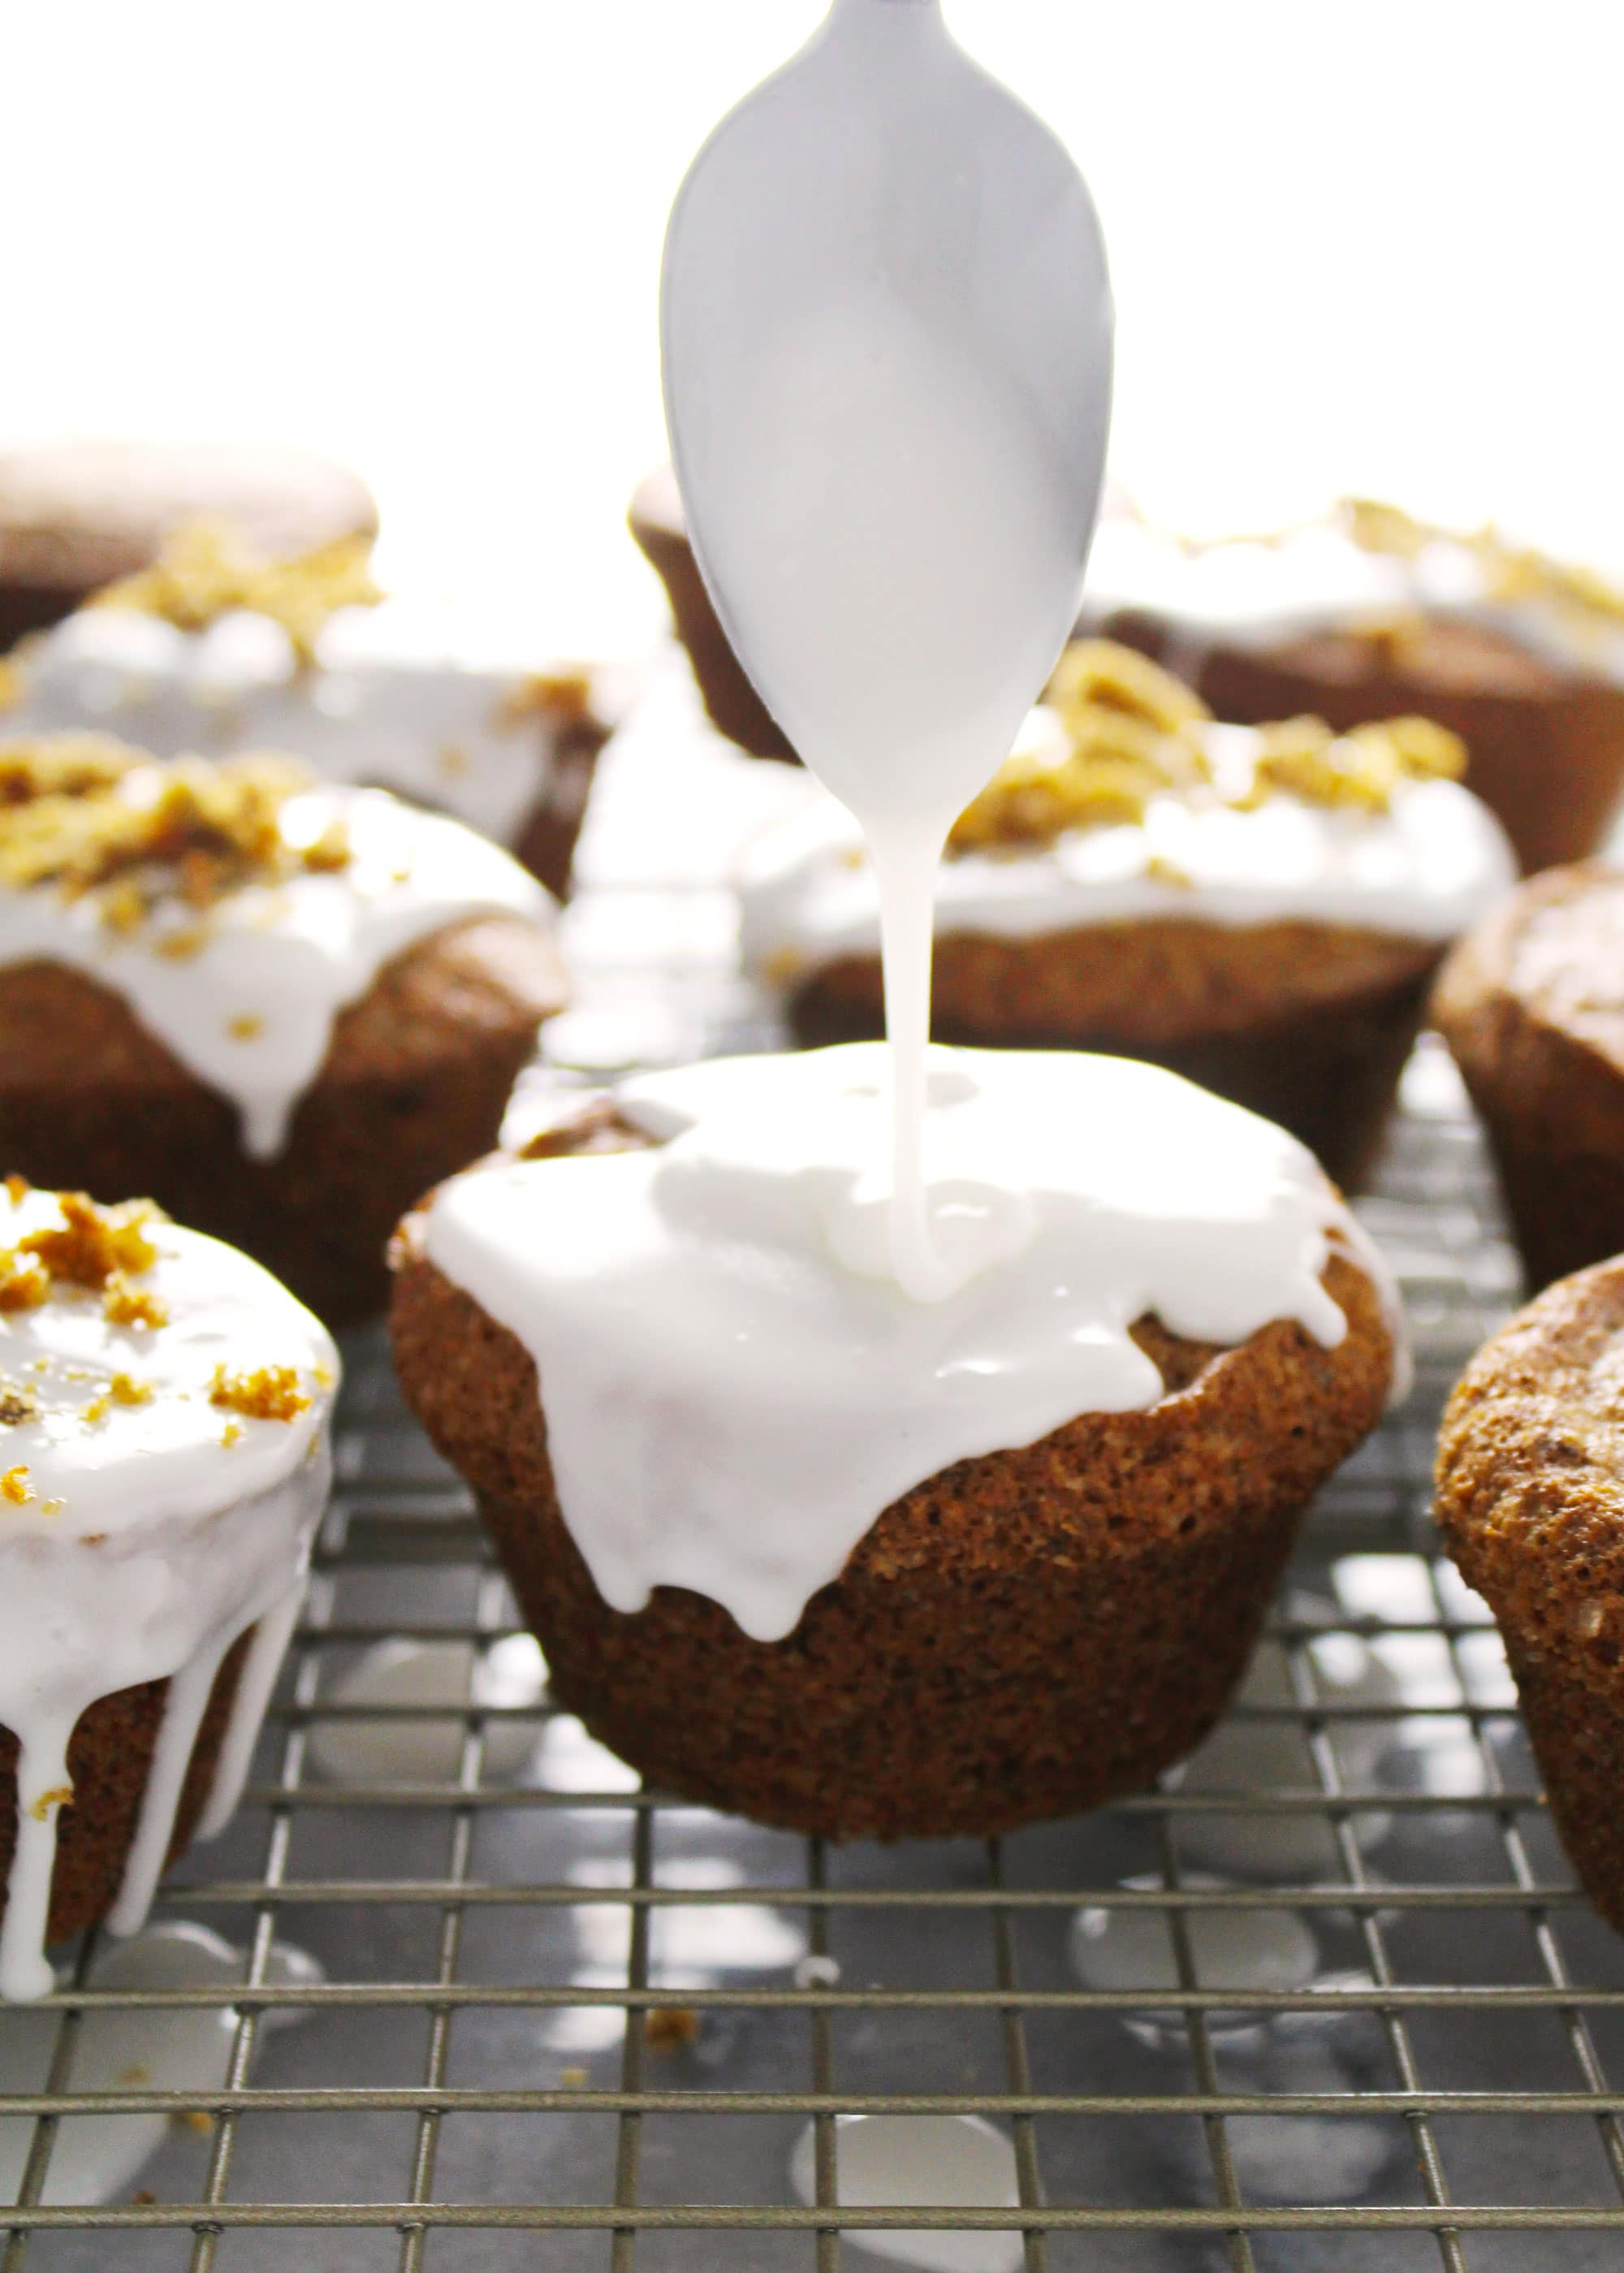 Maple spice orange muffin with a spoon drizzling icing on top.